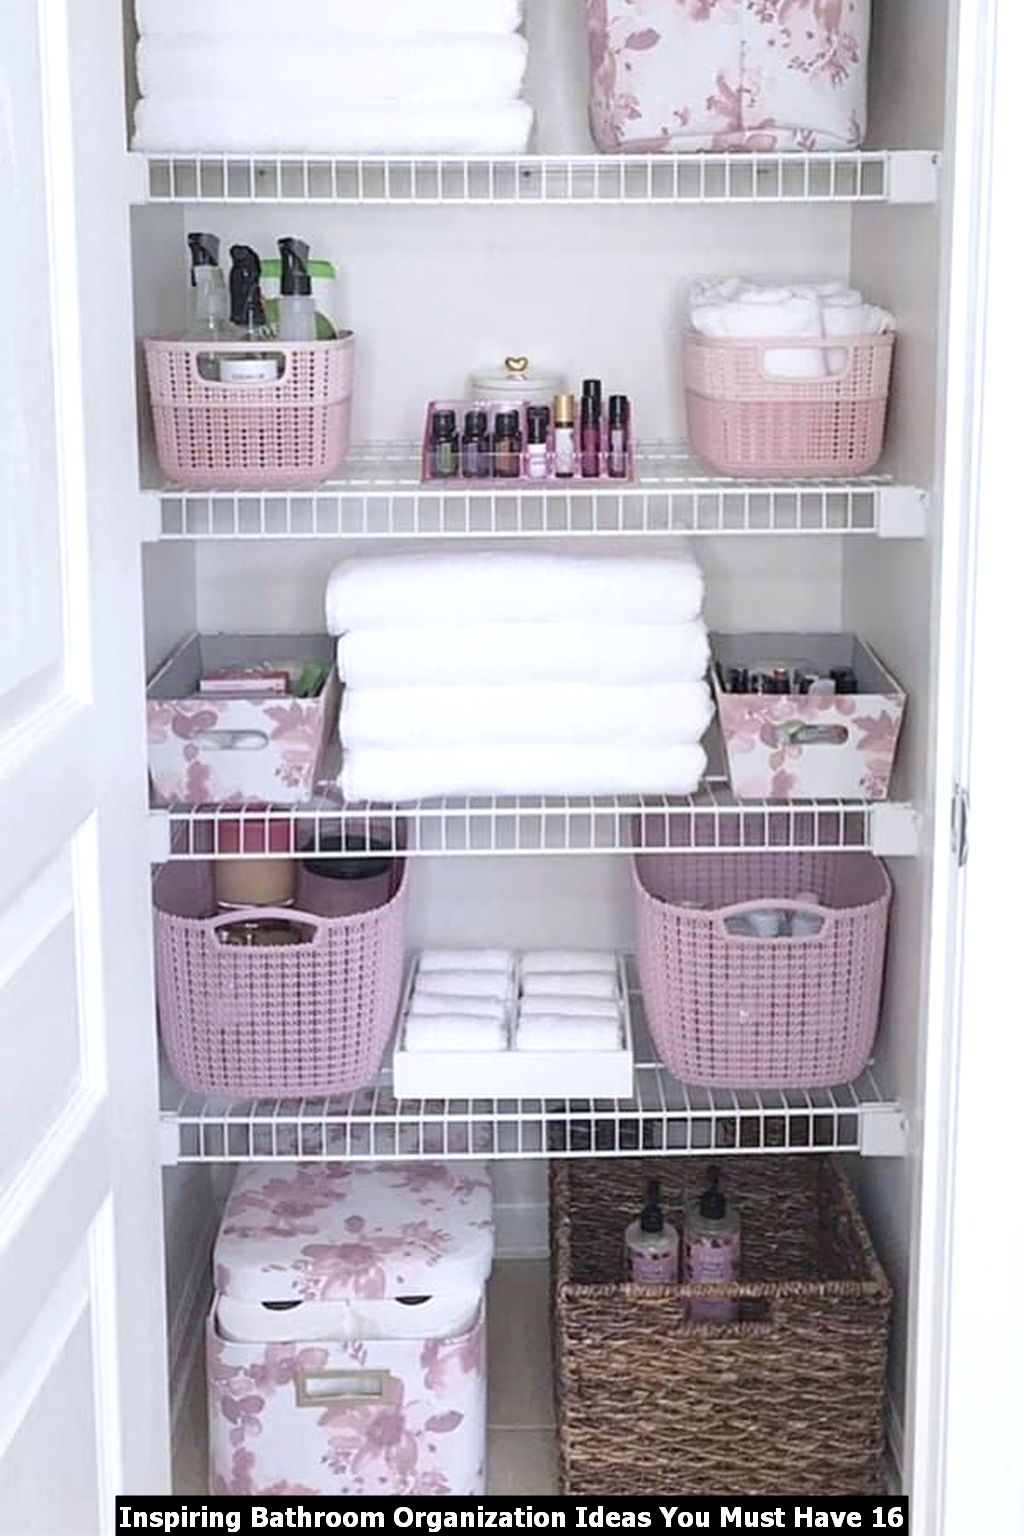 Inspiring Bathroom Organization Ideas You Must Have 16